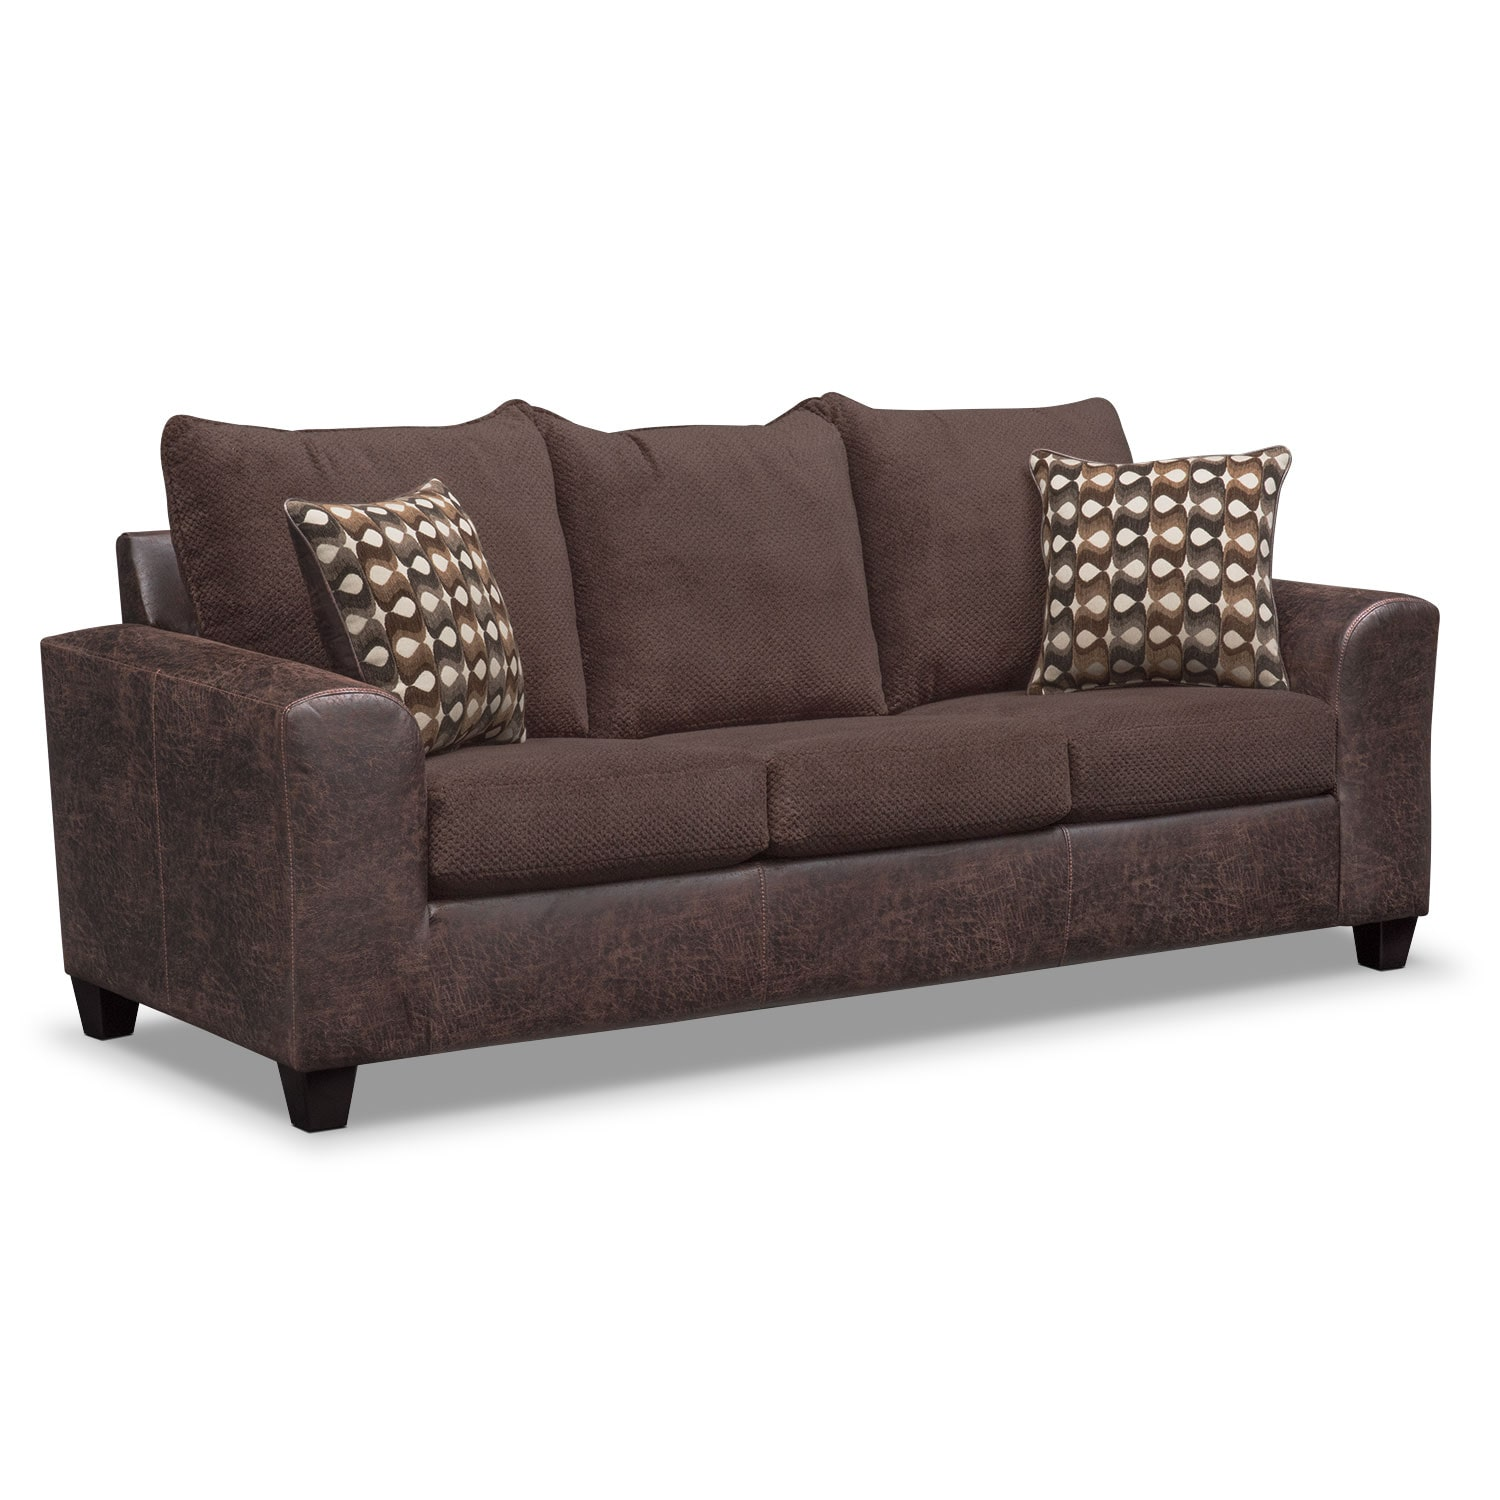 Living Room Furniture - Brando Sofa - Chocolate